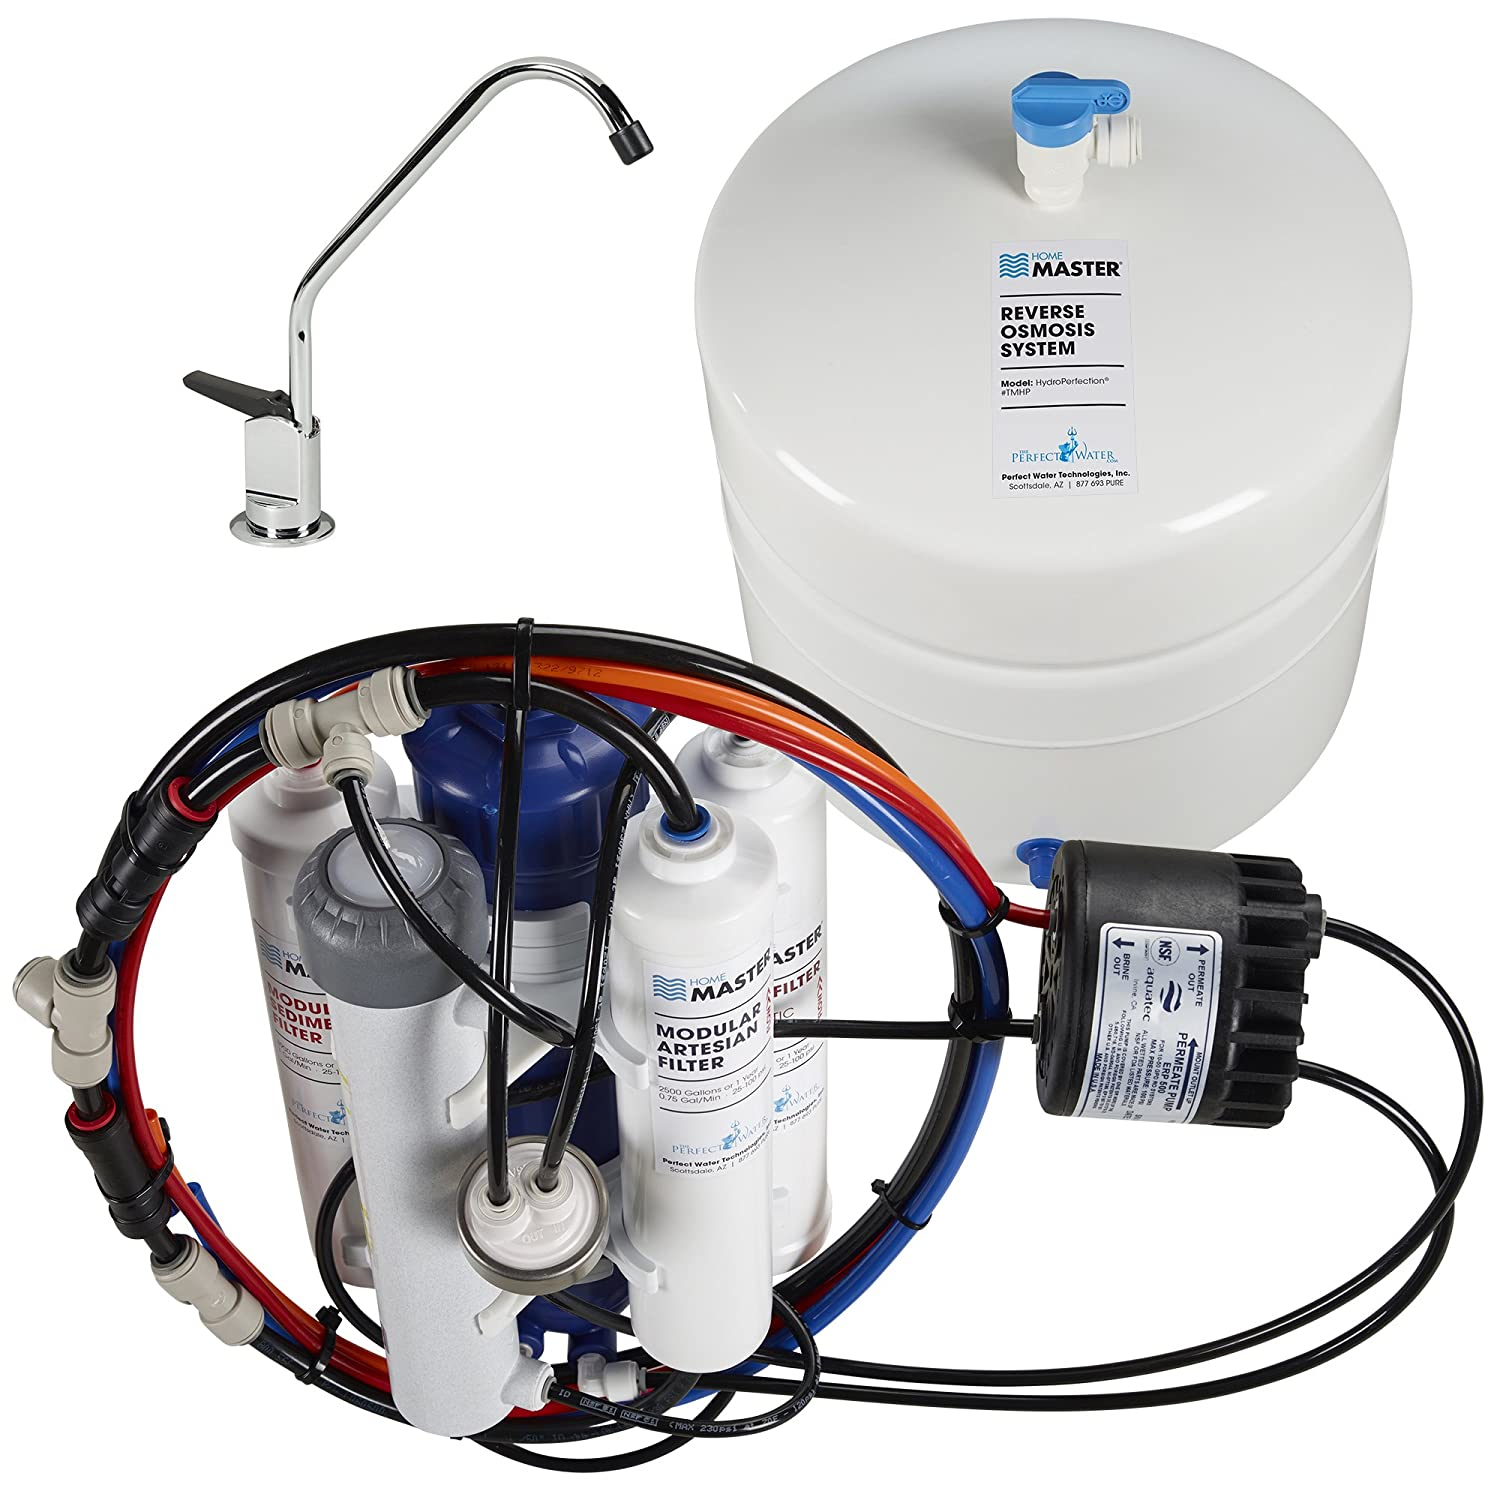 Best reverse osmosis filtration systems